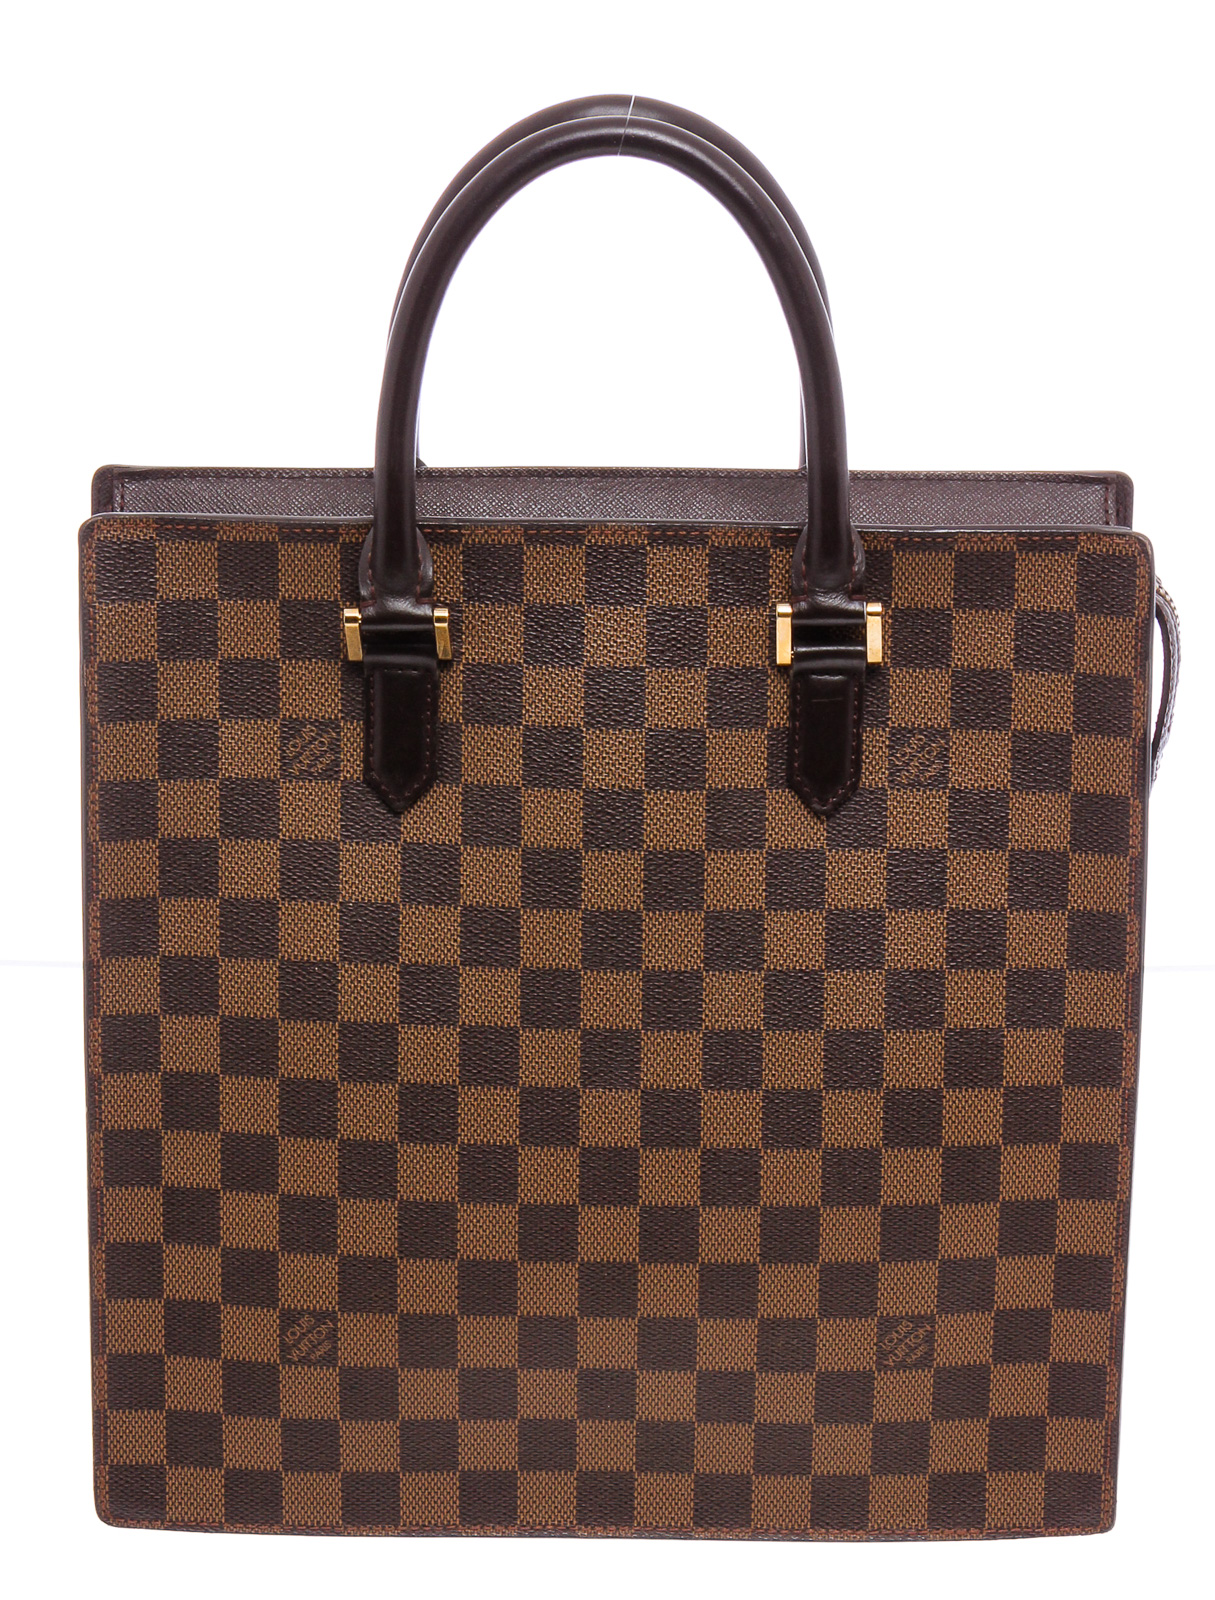 Louis Vuitton Damier Venice Sac Plat Marque Luxury.jpg